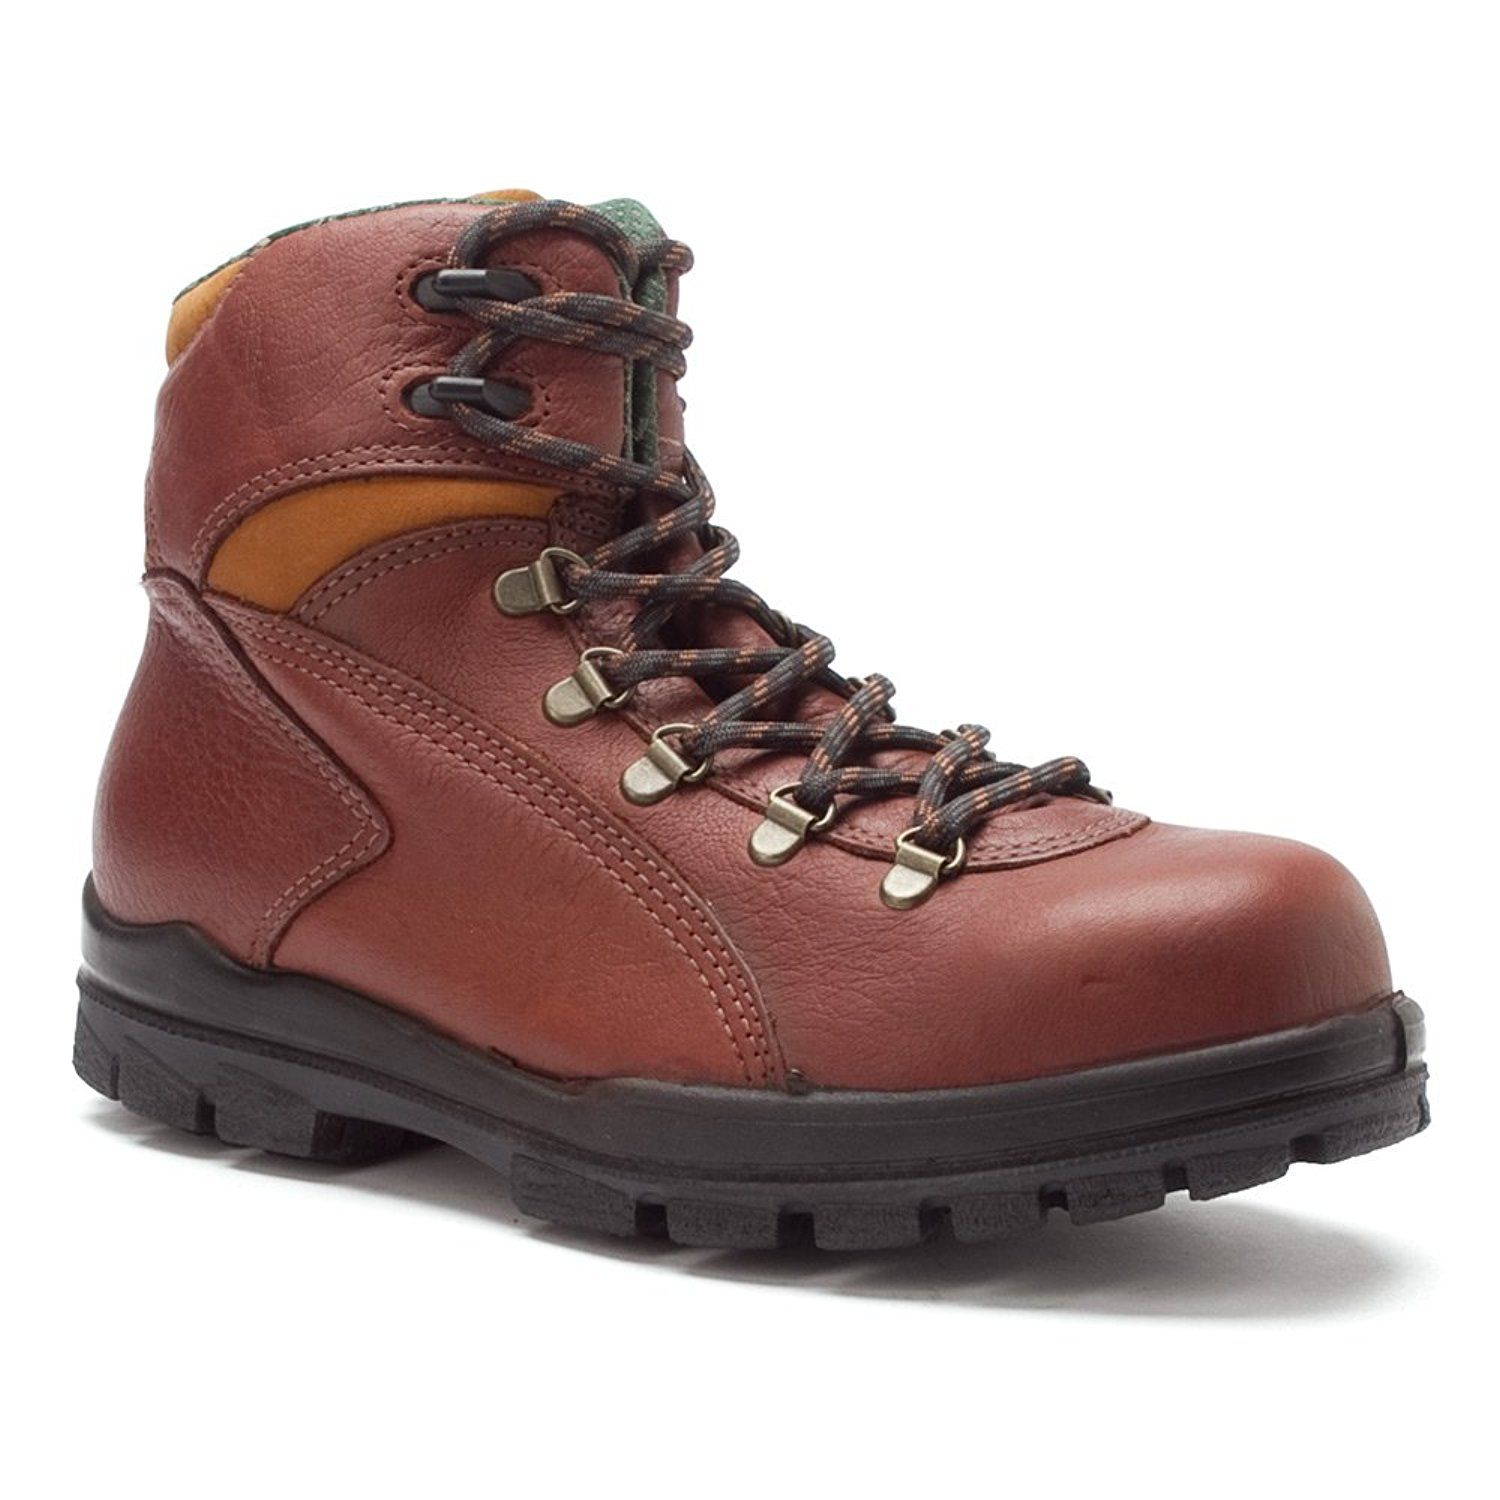 bde738dbf94 Wolverine Men's Tacoma Hiker 6 Inch Steel Toe EH Work Boot ...